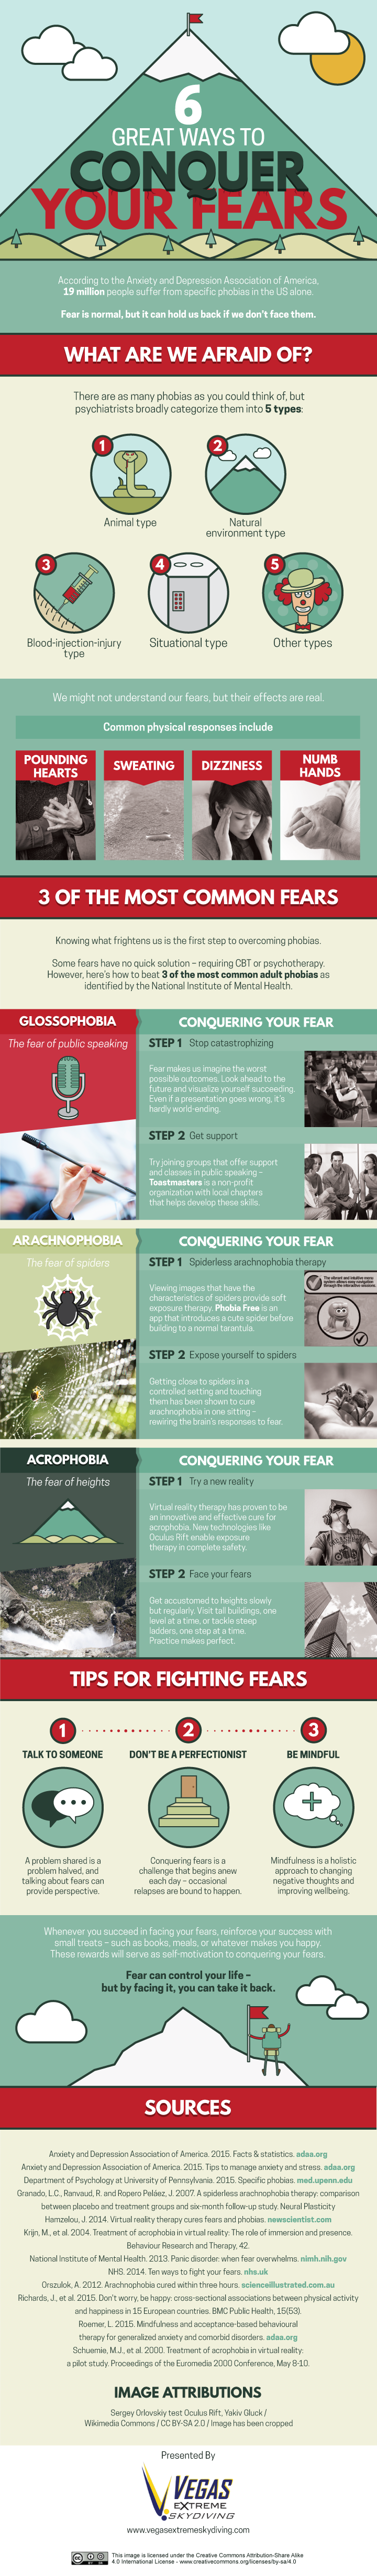 Beat Your Fears: 6 Great Ways How - Infographic